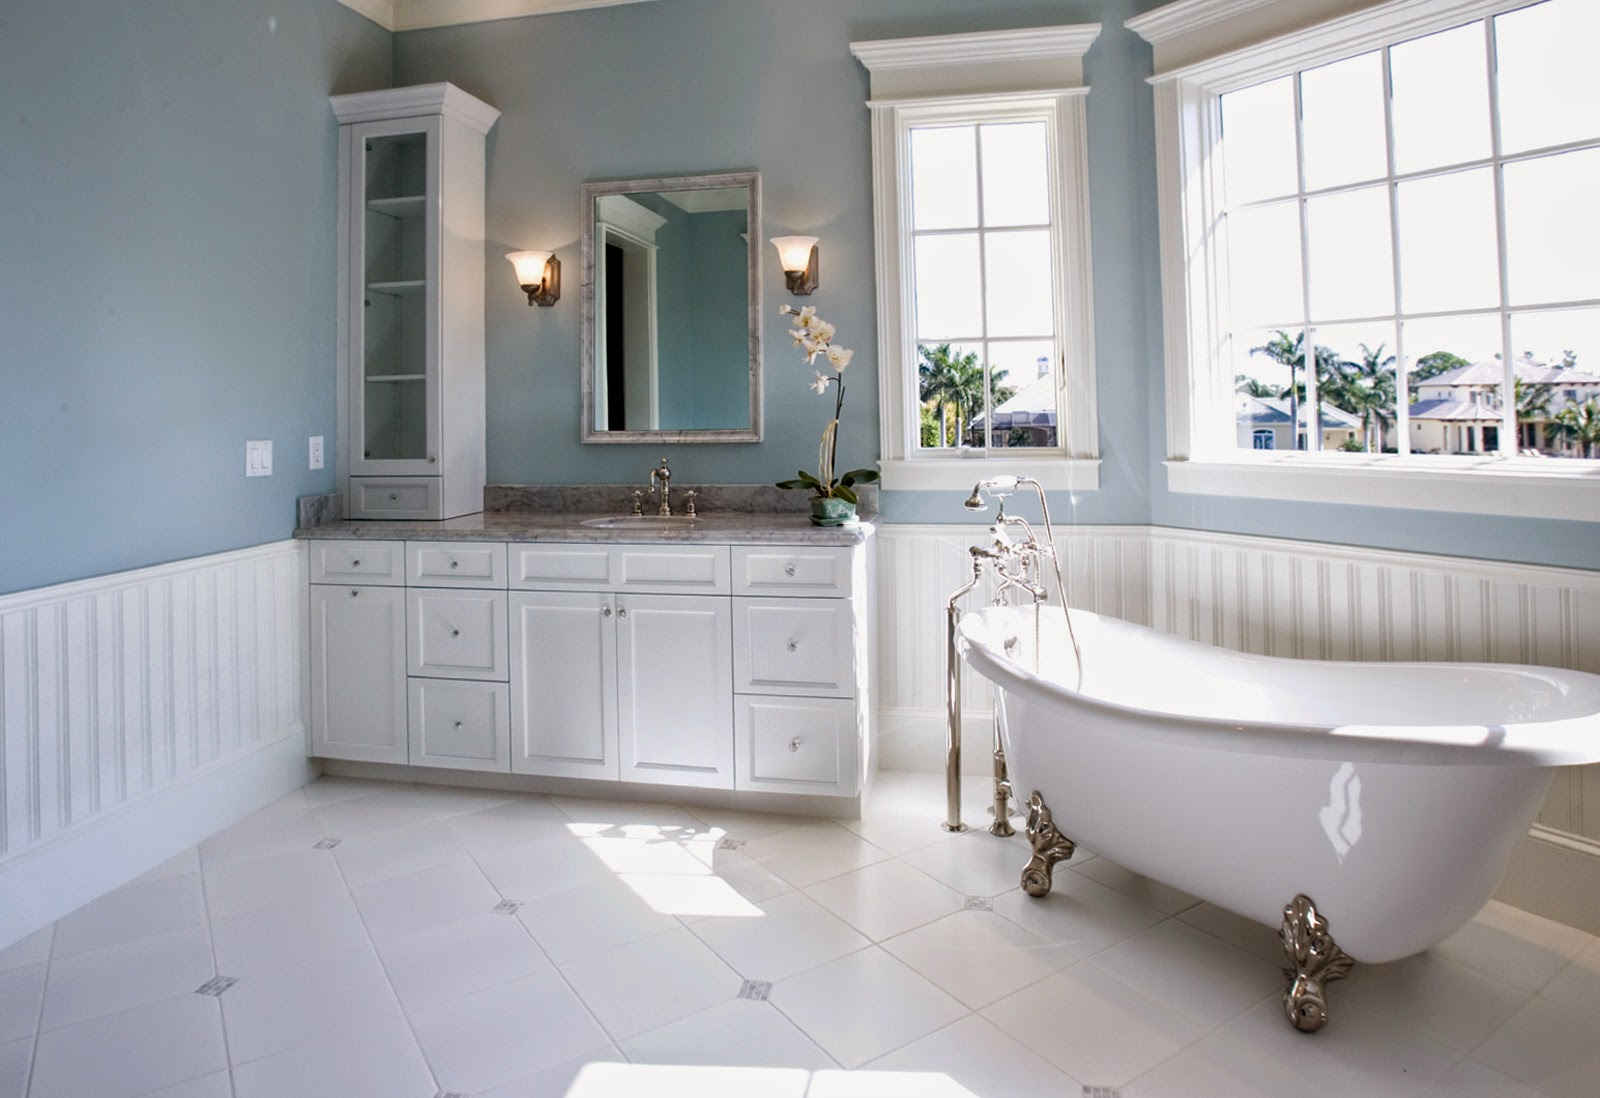 TOP 10 Beautiful Bathroom Design 2014 | Home Interior Blog Magazine